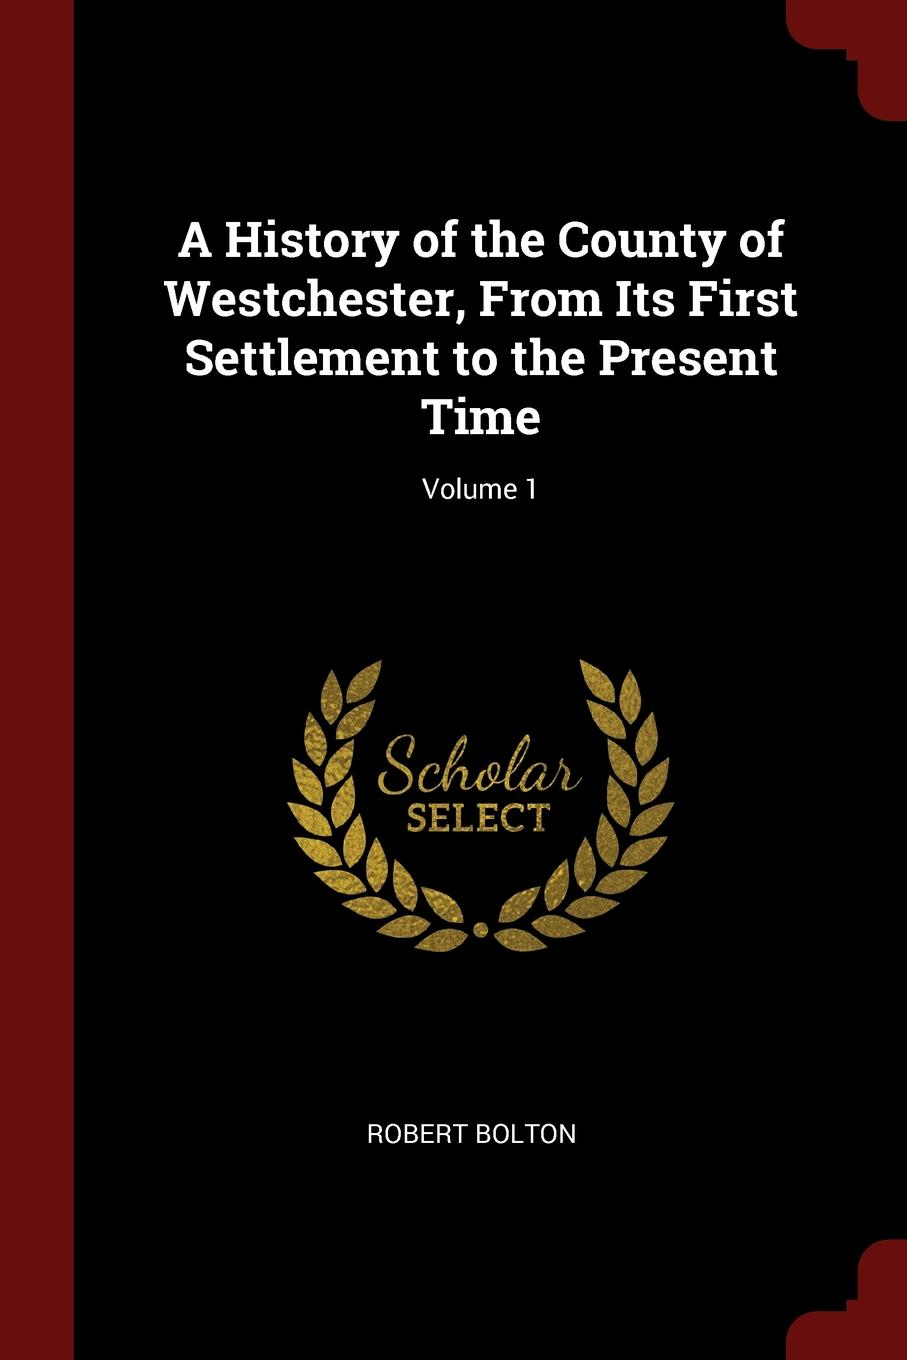 Robert Bolton A History of the County of Westchester, From Its First Settlement to the Present Time; Volume 1